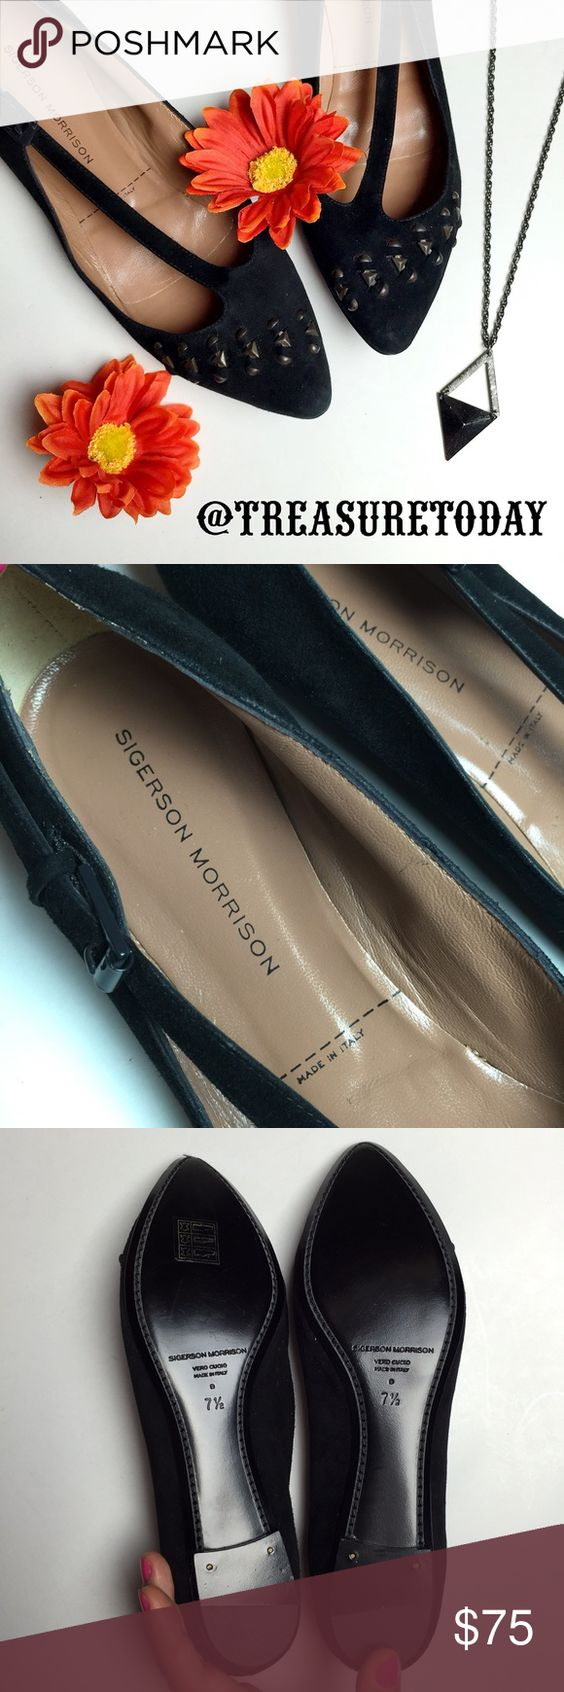 NEW Sigerson Morrison Suede Pointed Flats Super cute design, new , never worn. Studded in front. No box or tags. Feel free to ask any question, I'm here to help! 🎉Offers welcome 🎉 Bundle 2 or more items and get %10 off instantly💕 all pictures are taken by me. Sigerson Morrison Shoes Flats & Loafers